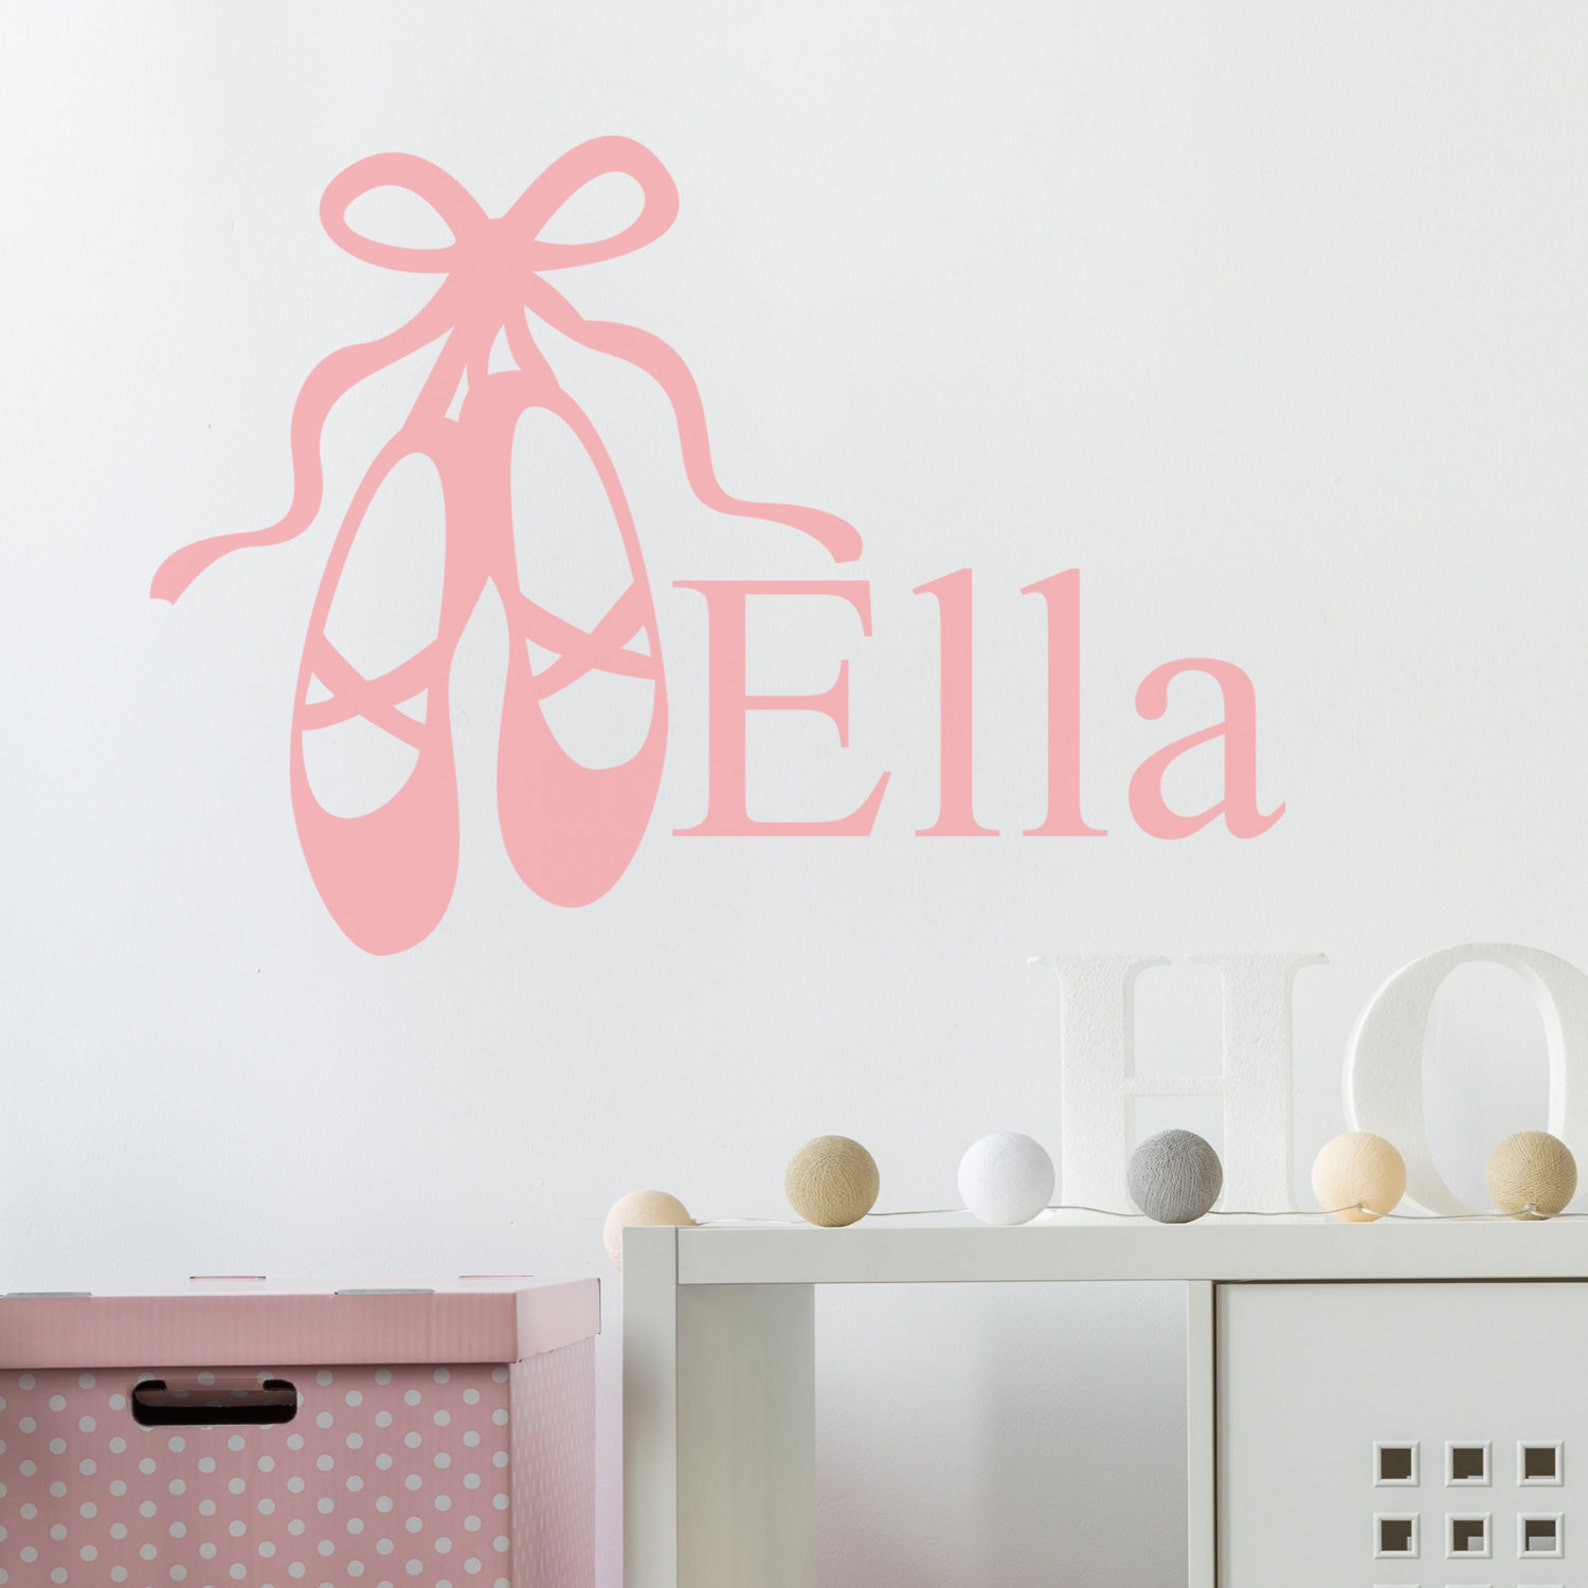 wall sticker personalised ballet shoes - decals - wall tattoo - wall art - wall quote - home decor - wall decor - wall decals -